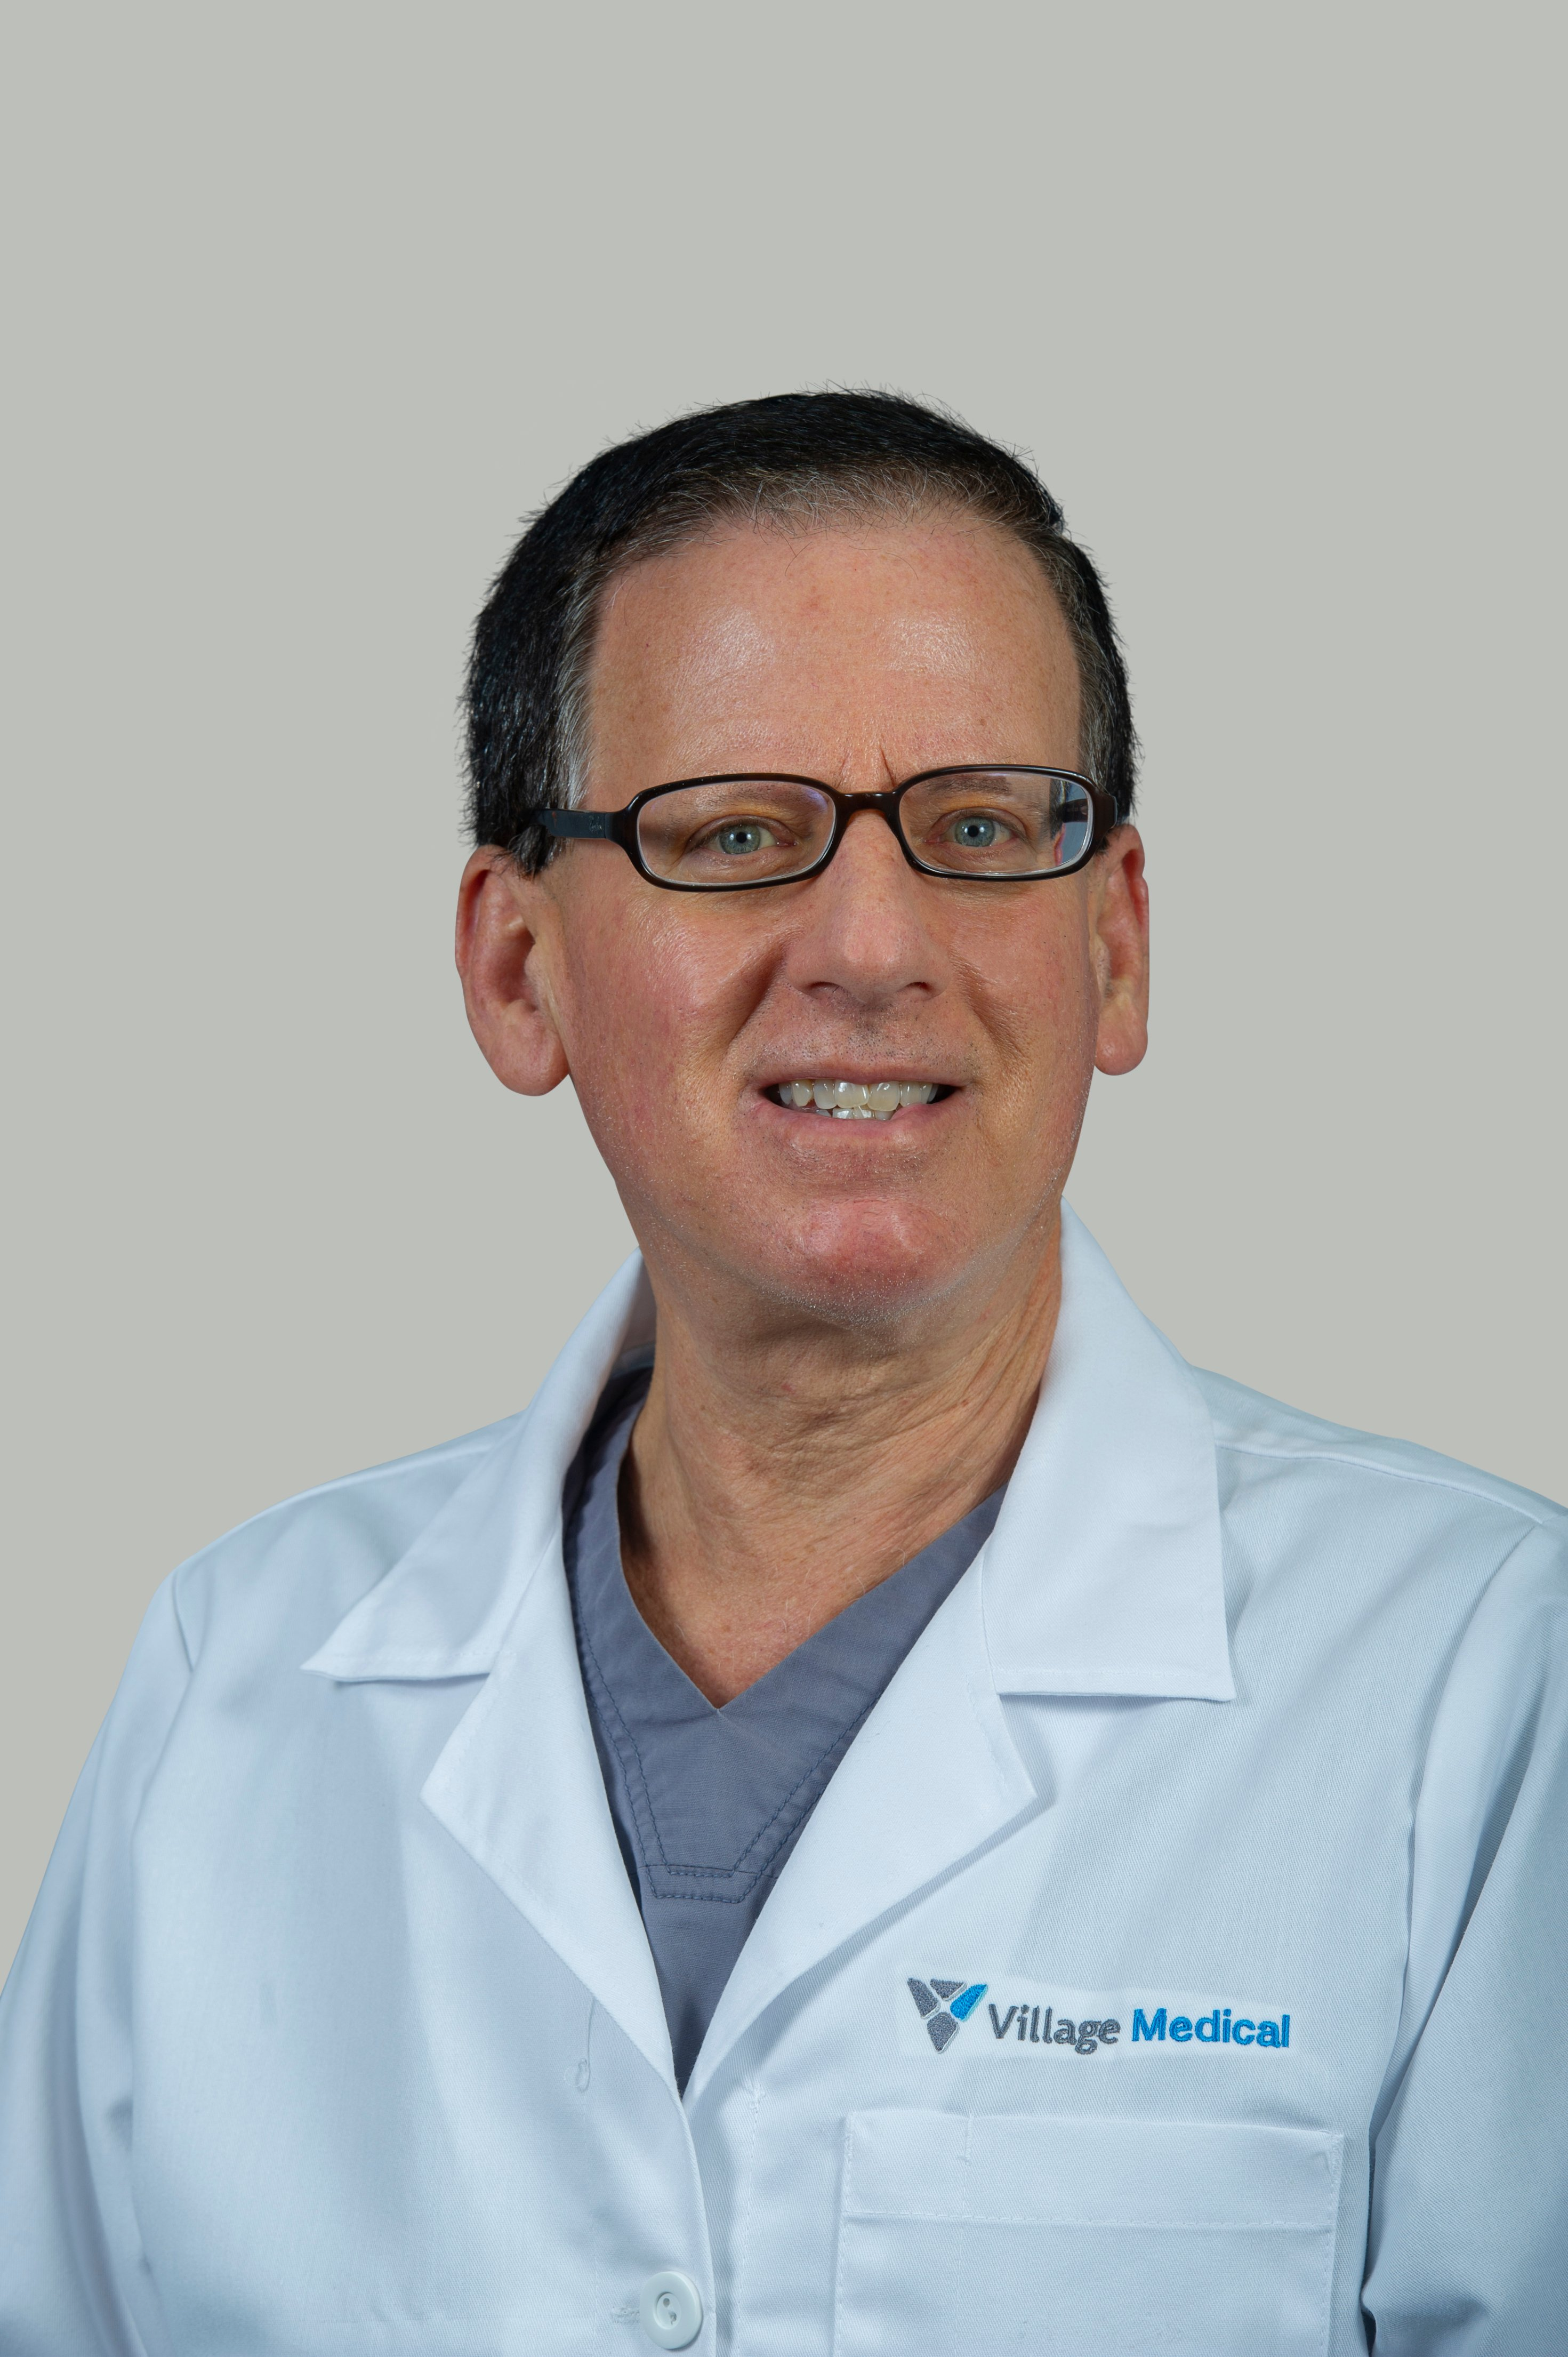 Gary Oxenberg, MD